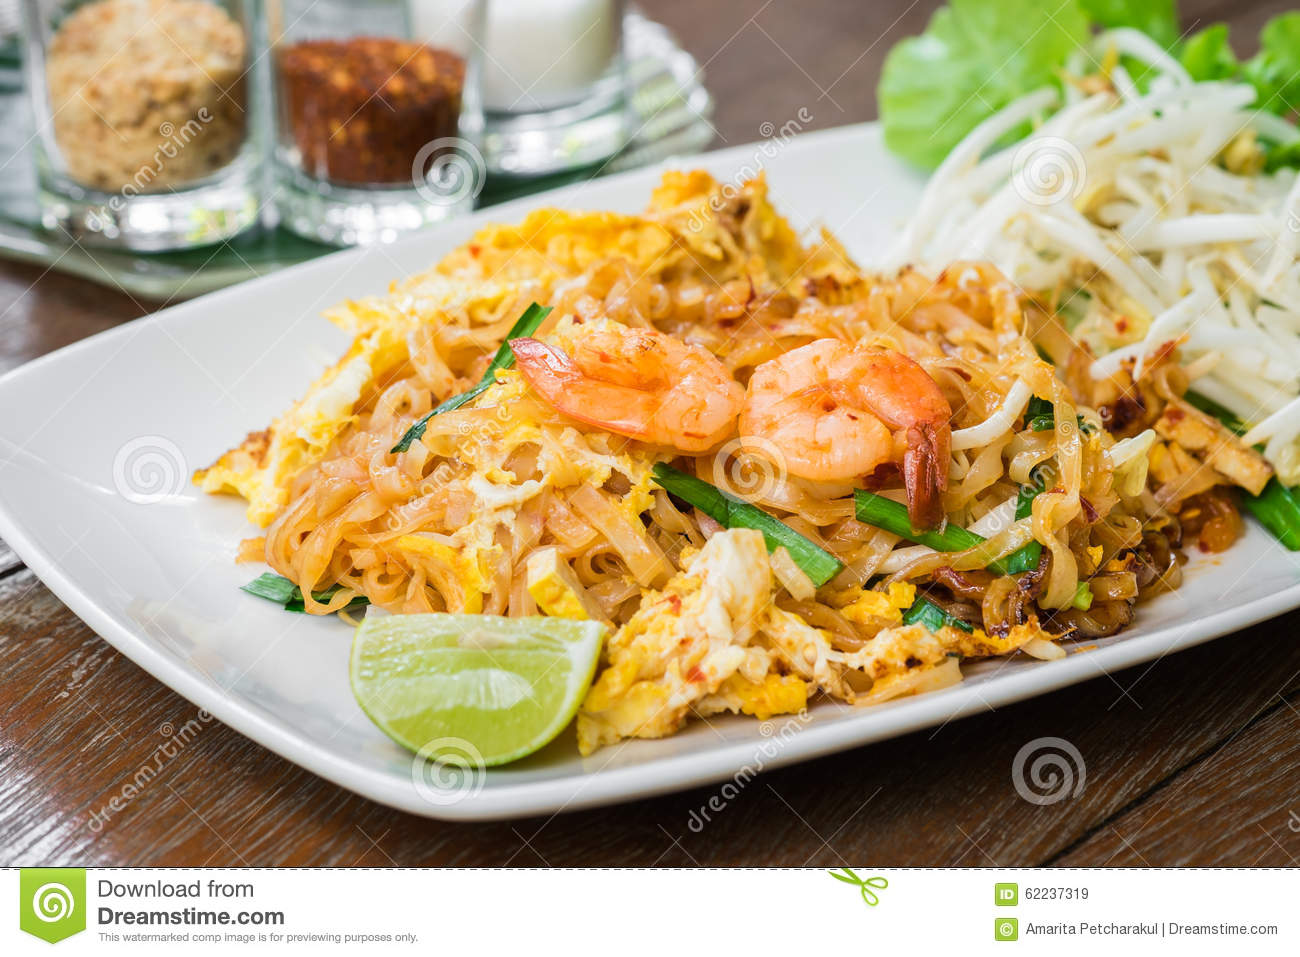 Stir Fried Rice Noodles With Shrimp (Pad Thai), Thai Food Stock Photo ...